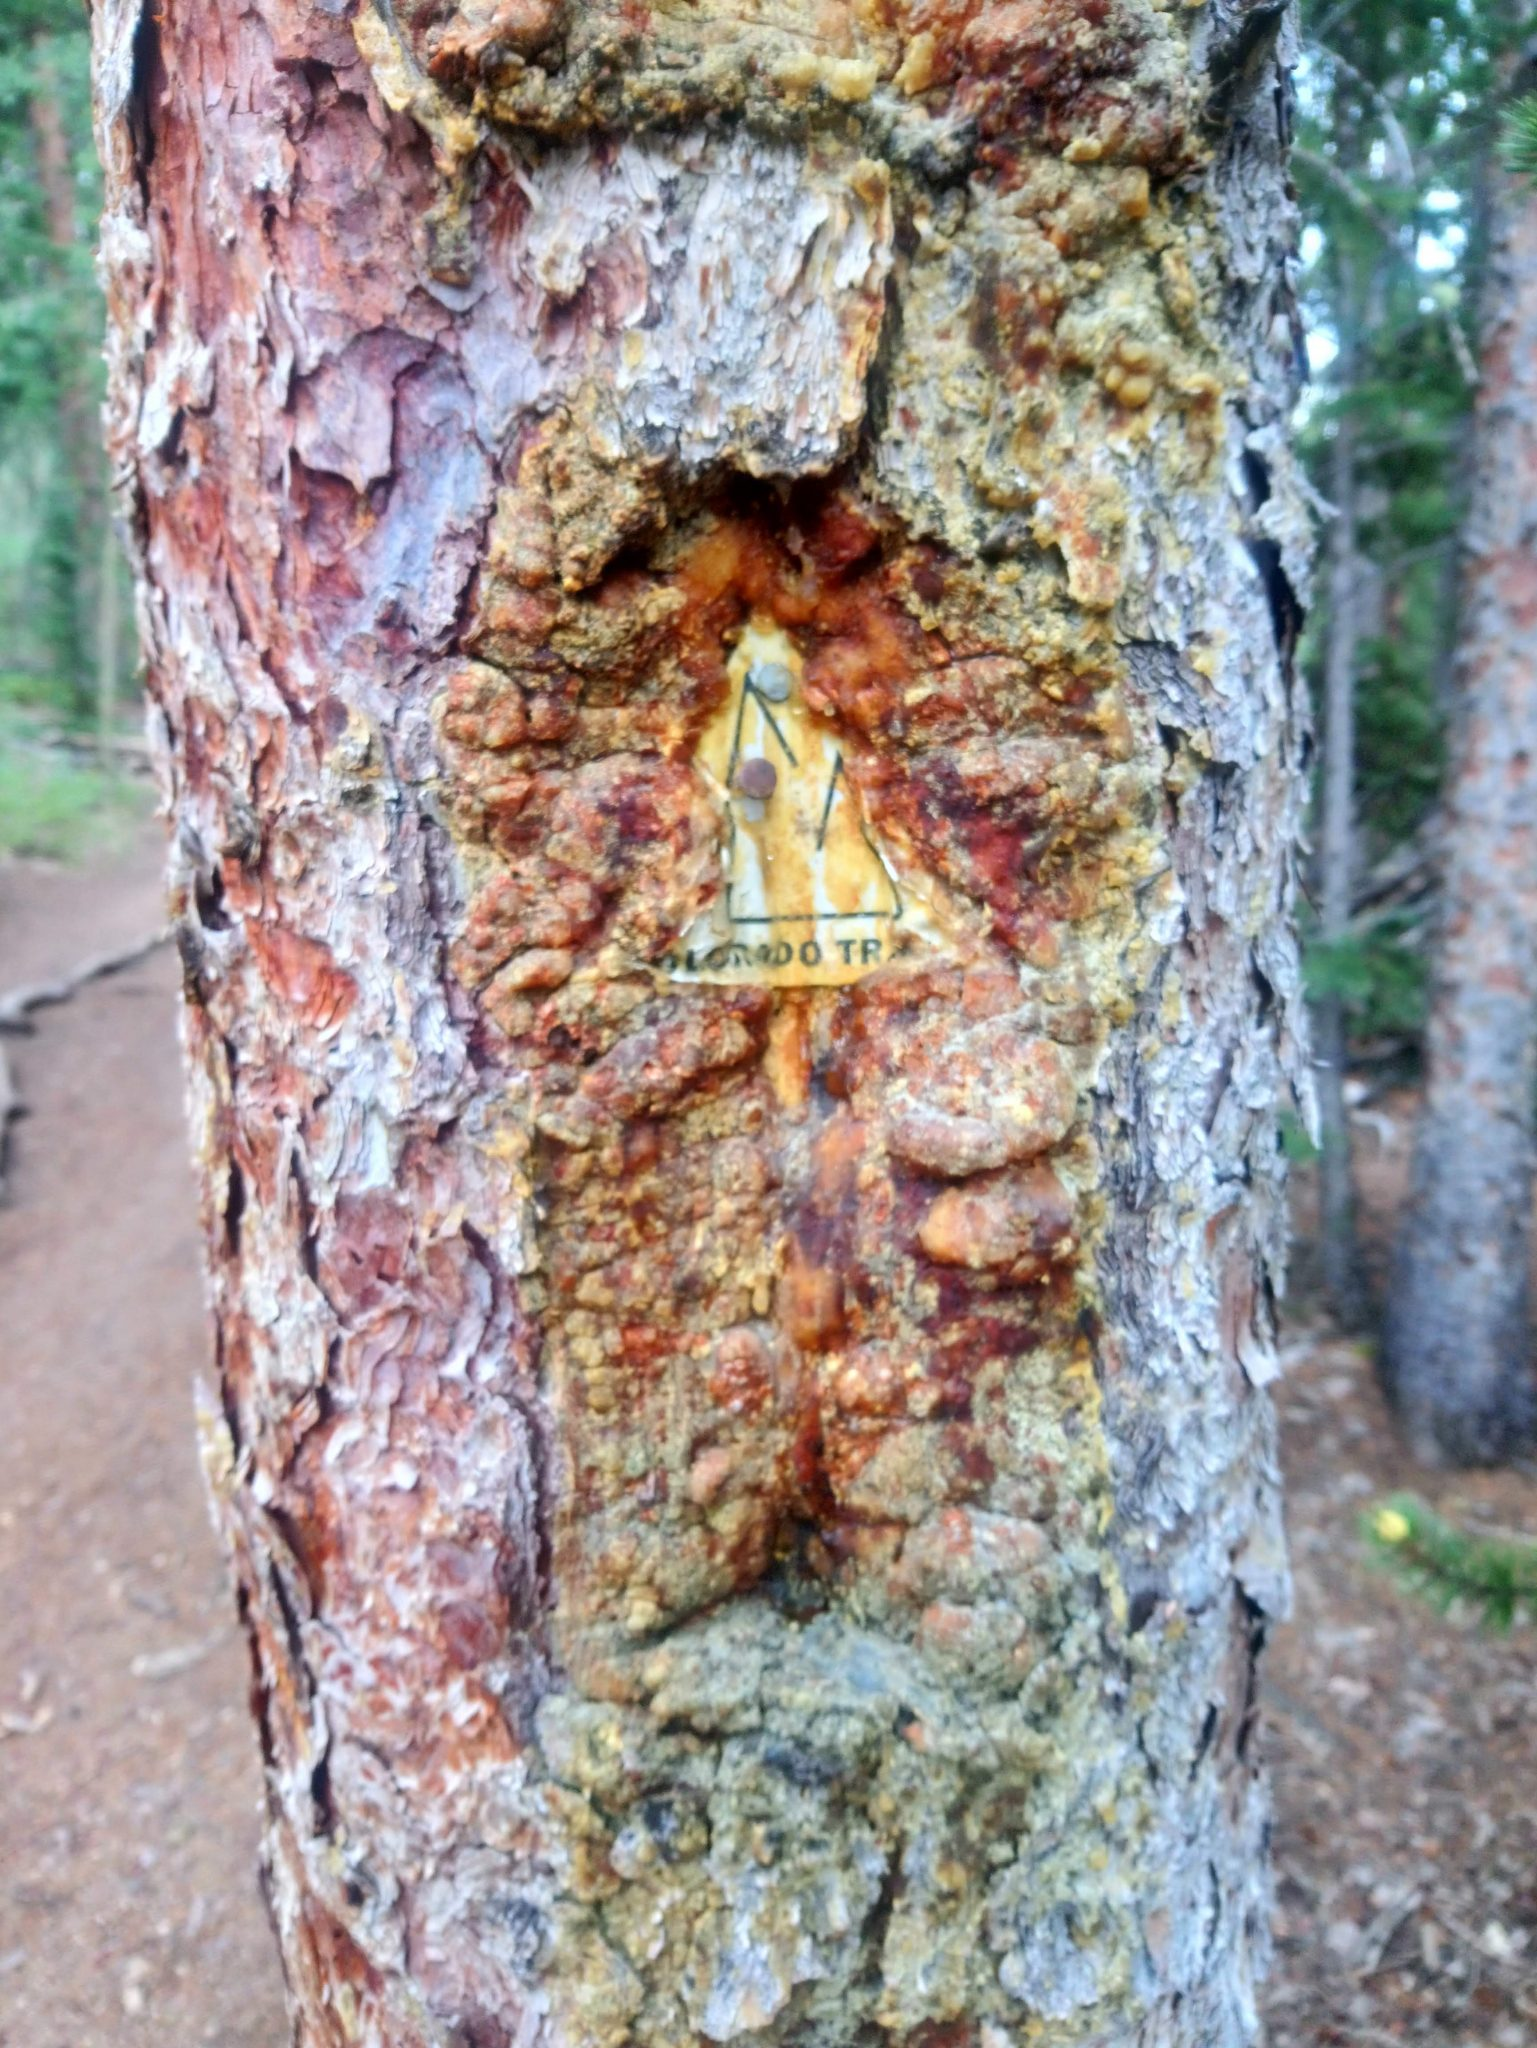 Colorado Trail Marker